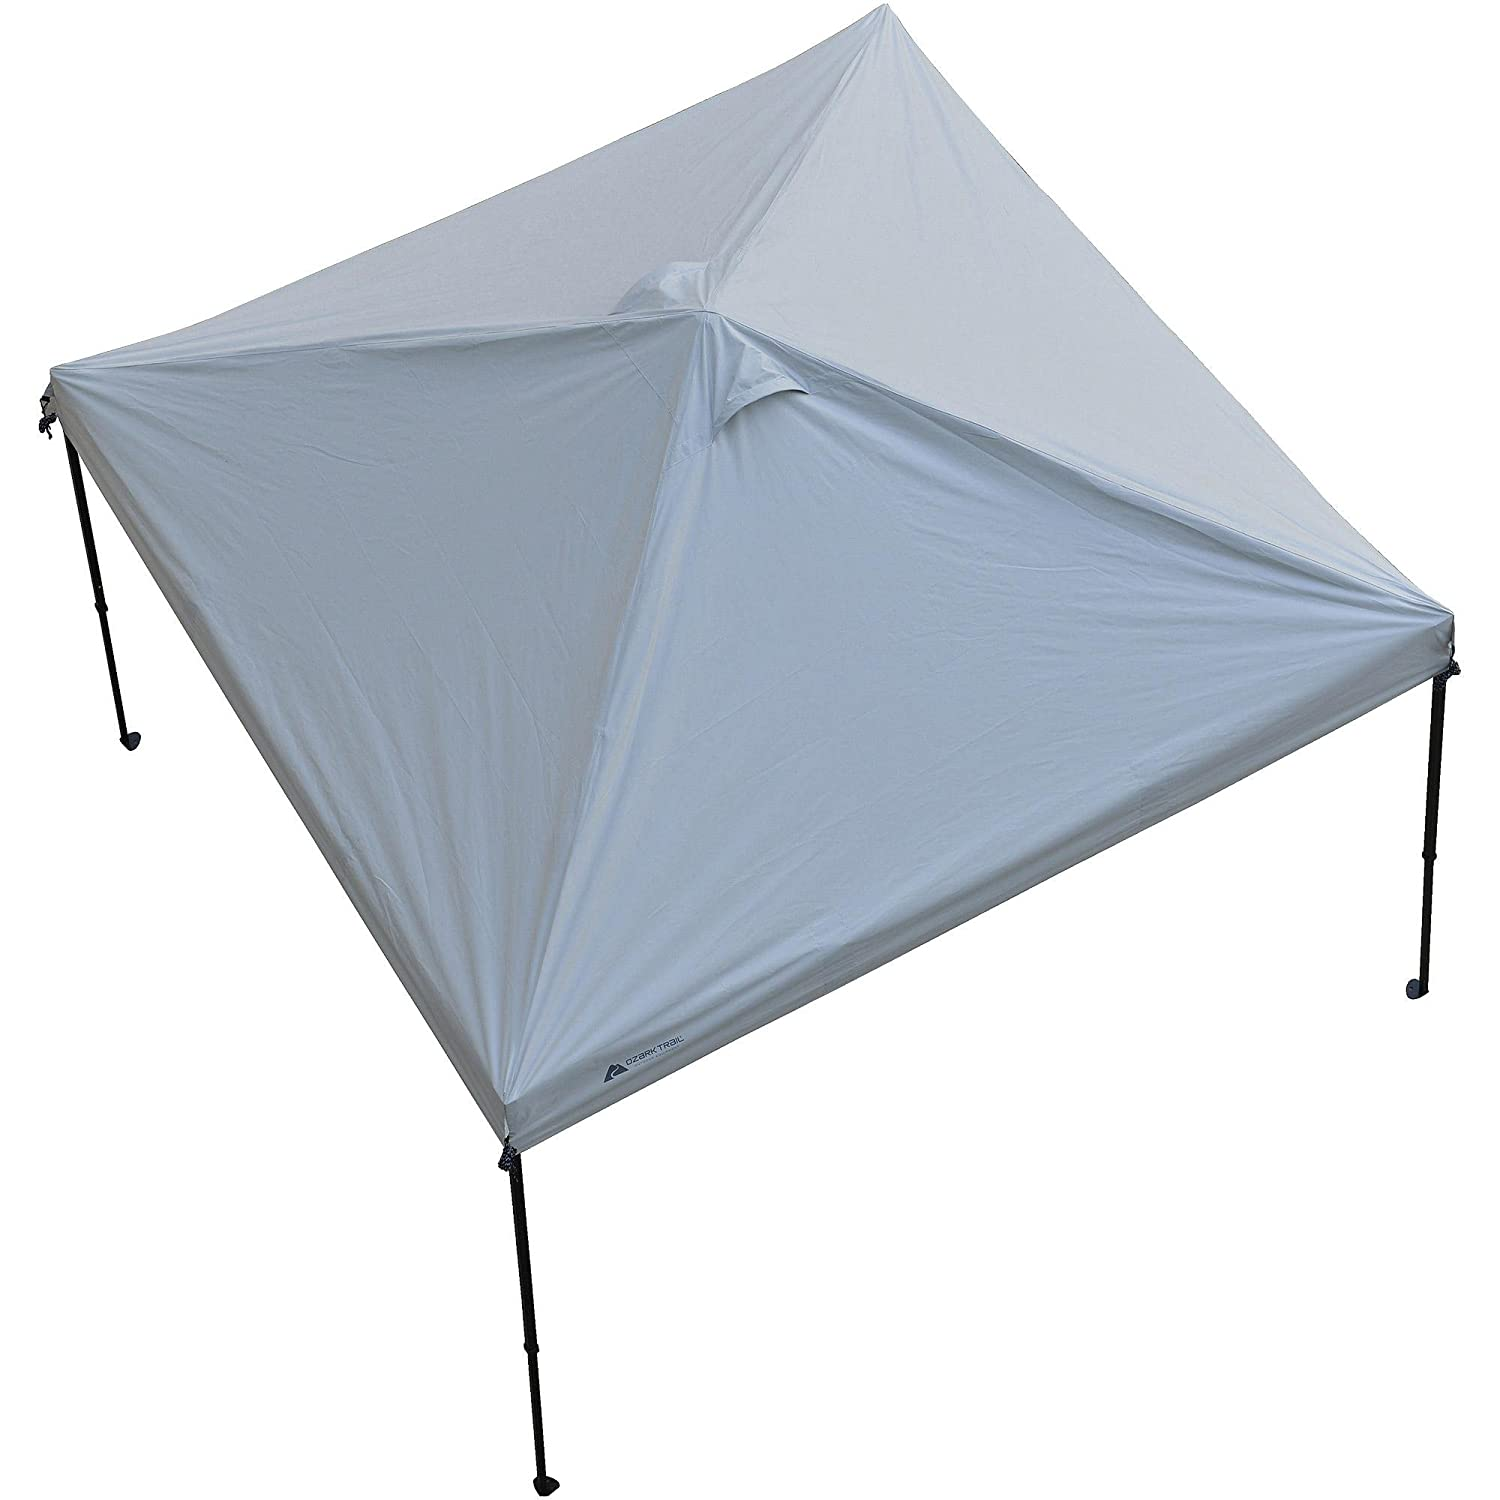 Amazon.com Ozark Trail 10ft x 10ft Gazebo Top (replacement top only Canopy frame not included) Garden u0026 Outdoor  sc 1 st  Amazon.com : tent 10x10 walmart - memphite.com